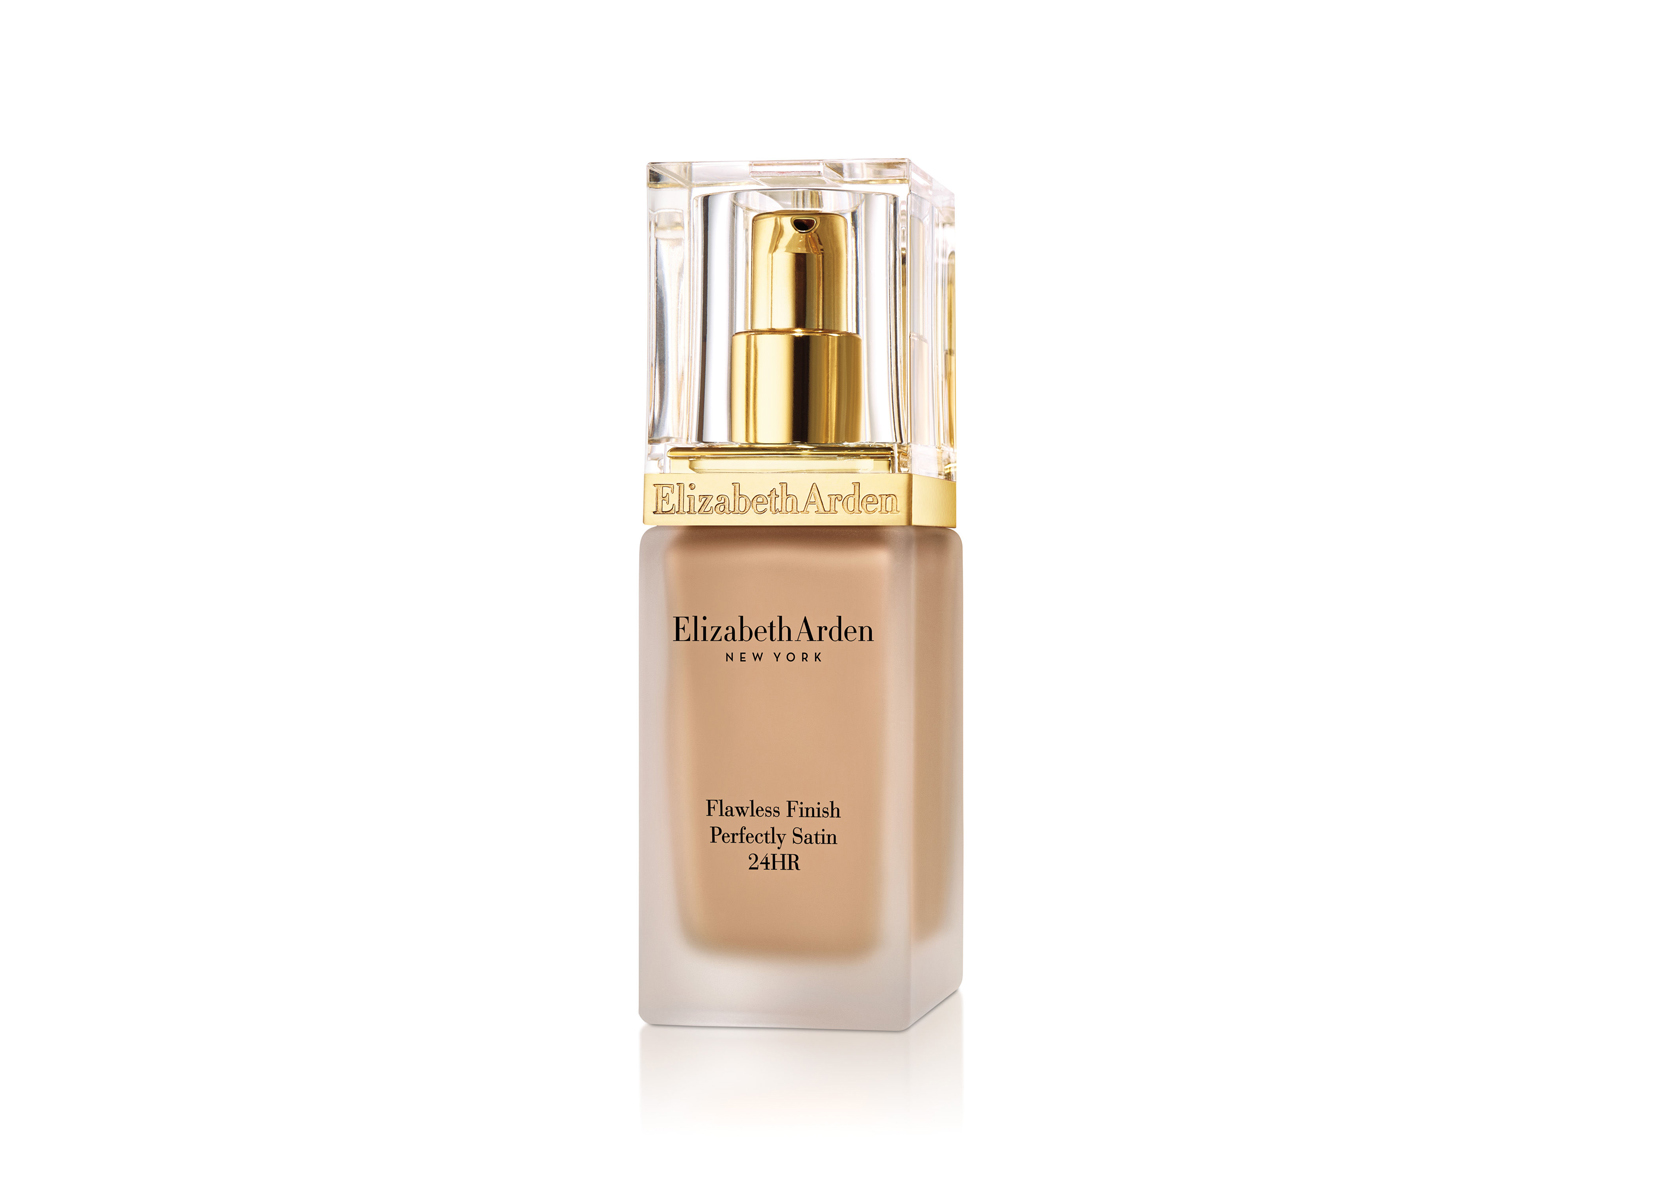 Elizabeth Arden Flawless Finish Perfectly Satin 24HR (PVPR 40 €)